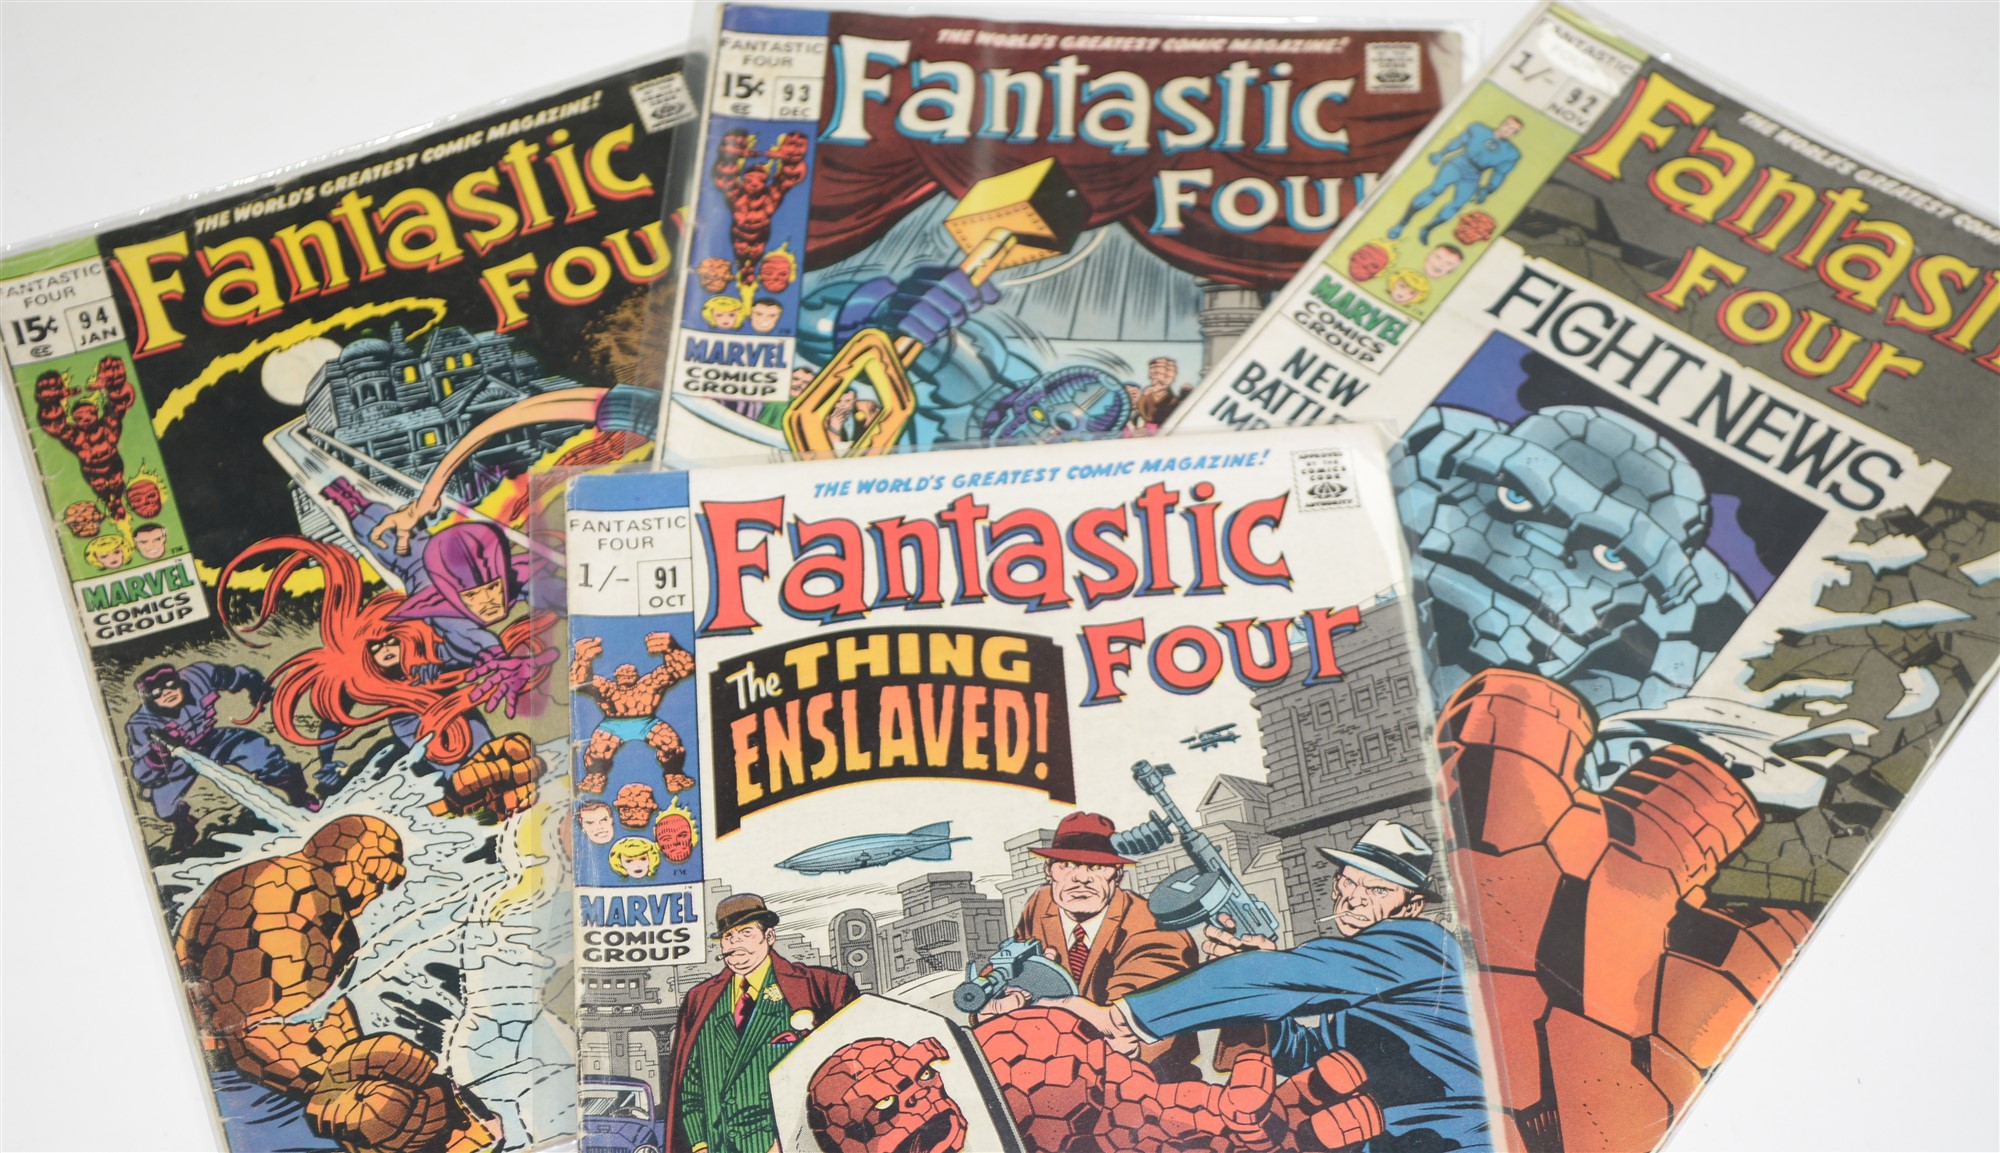 Fantastic Four No's. 60, 68, 77, 85, 87, 88, 90, 91, 92, 93 and 94. - Image 4 of 4